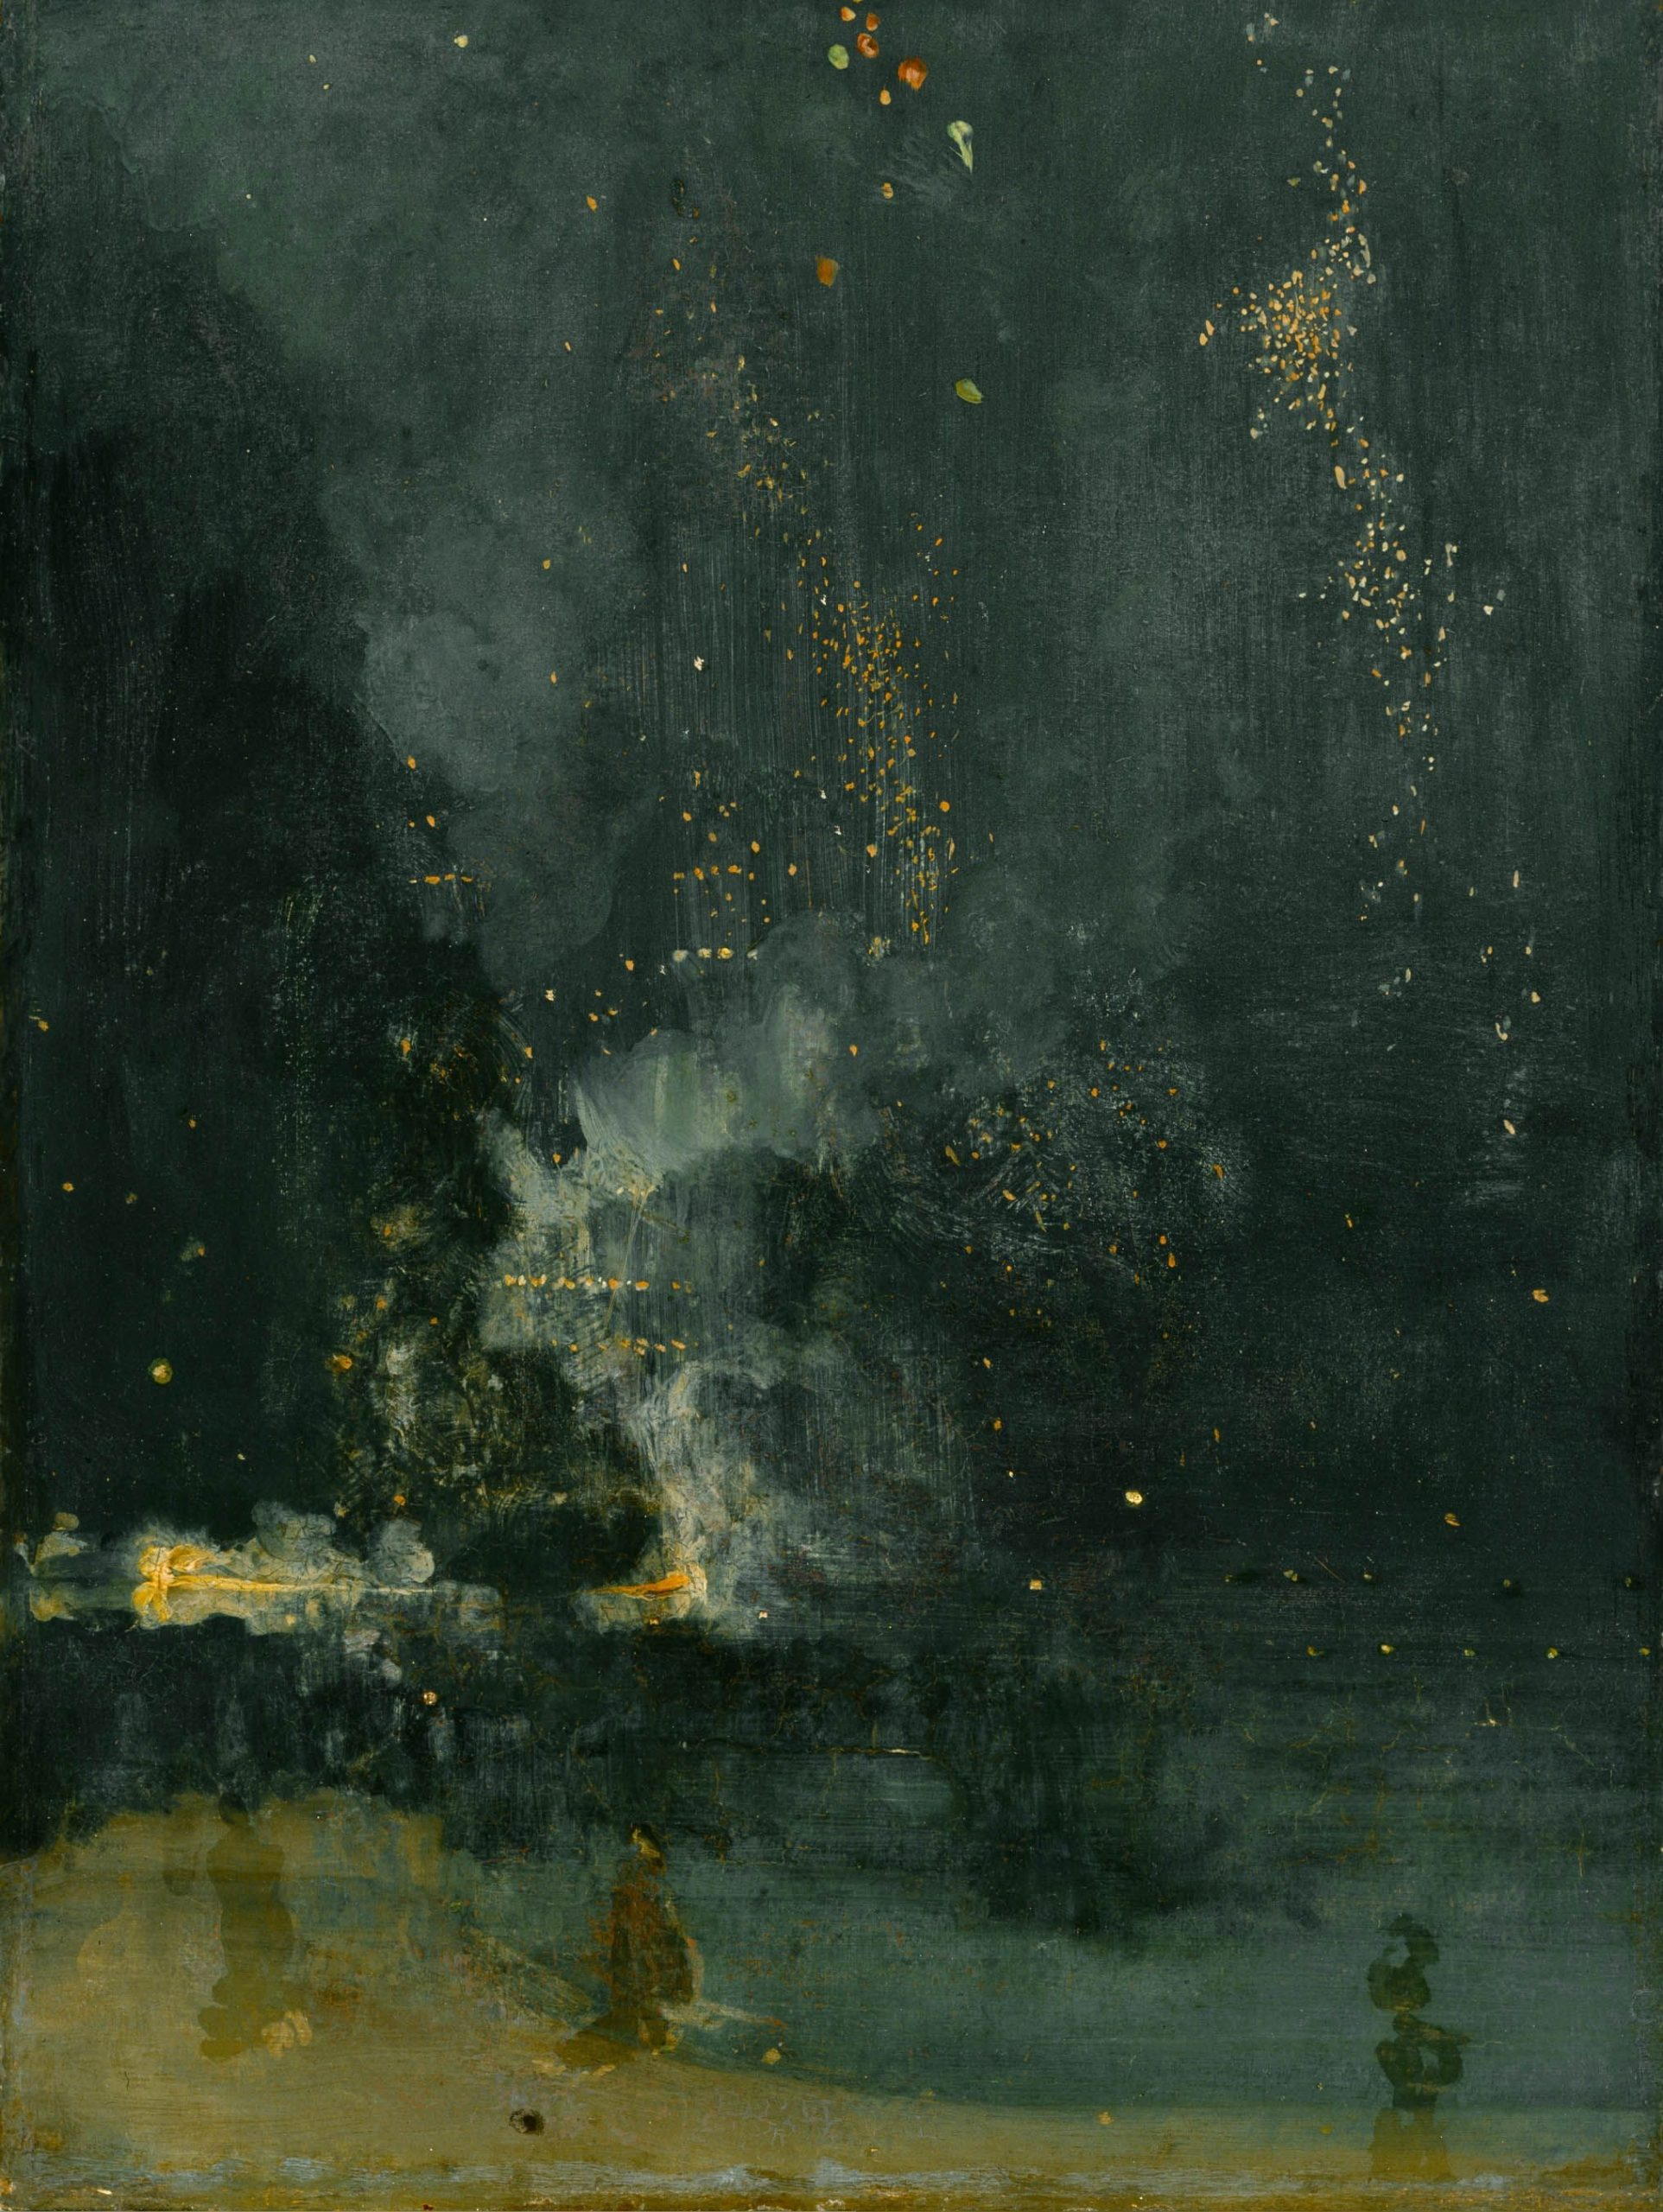 Nocturne in Black and Gold – The Falling Rocket - Detroit Institute of Arts